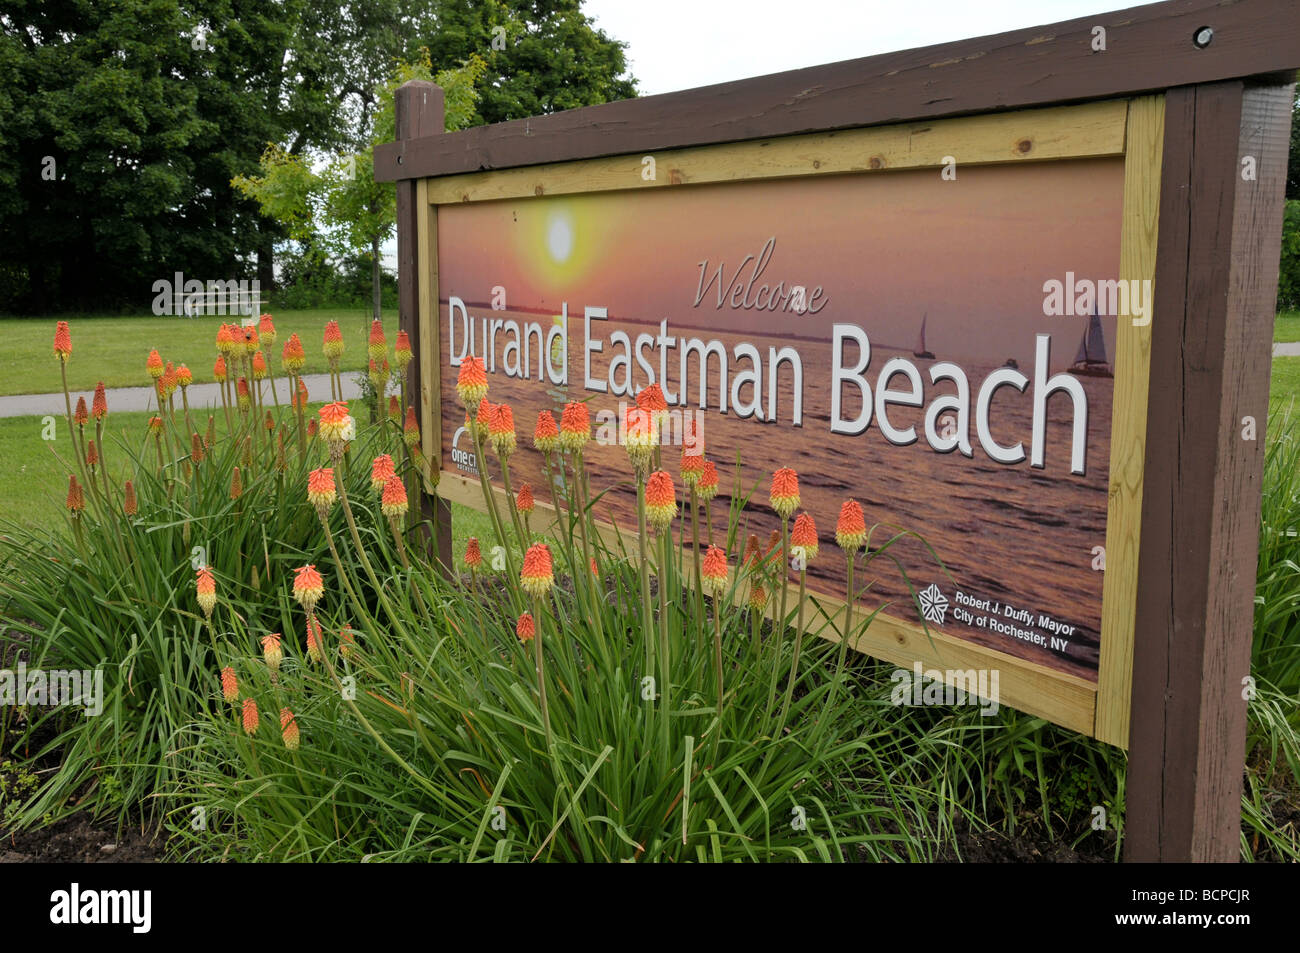 Sign, Durand Eastman Beach, Rochester, NY USA - Stock Image